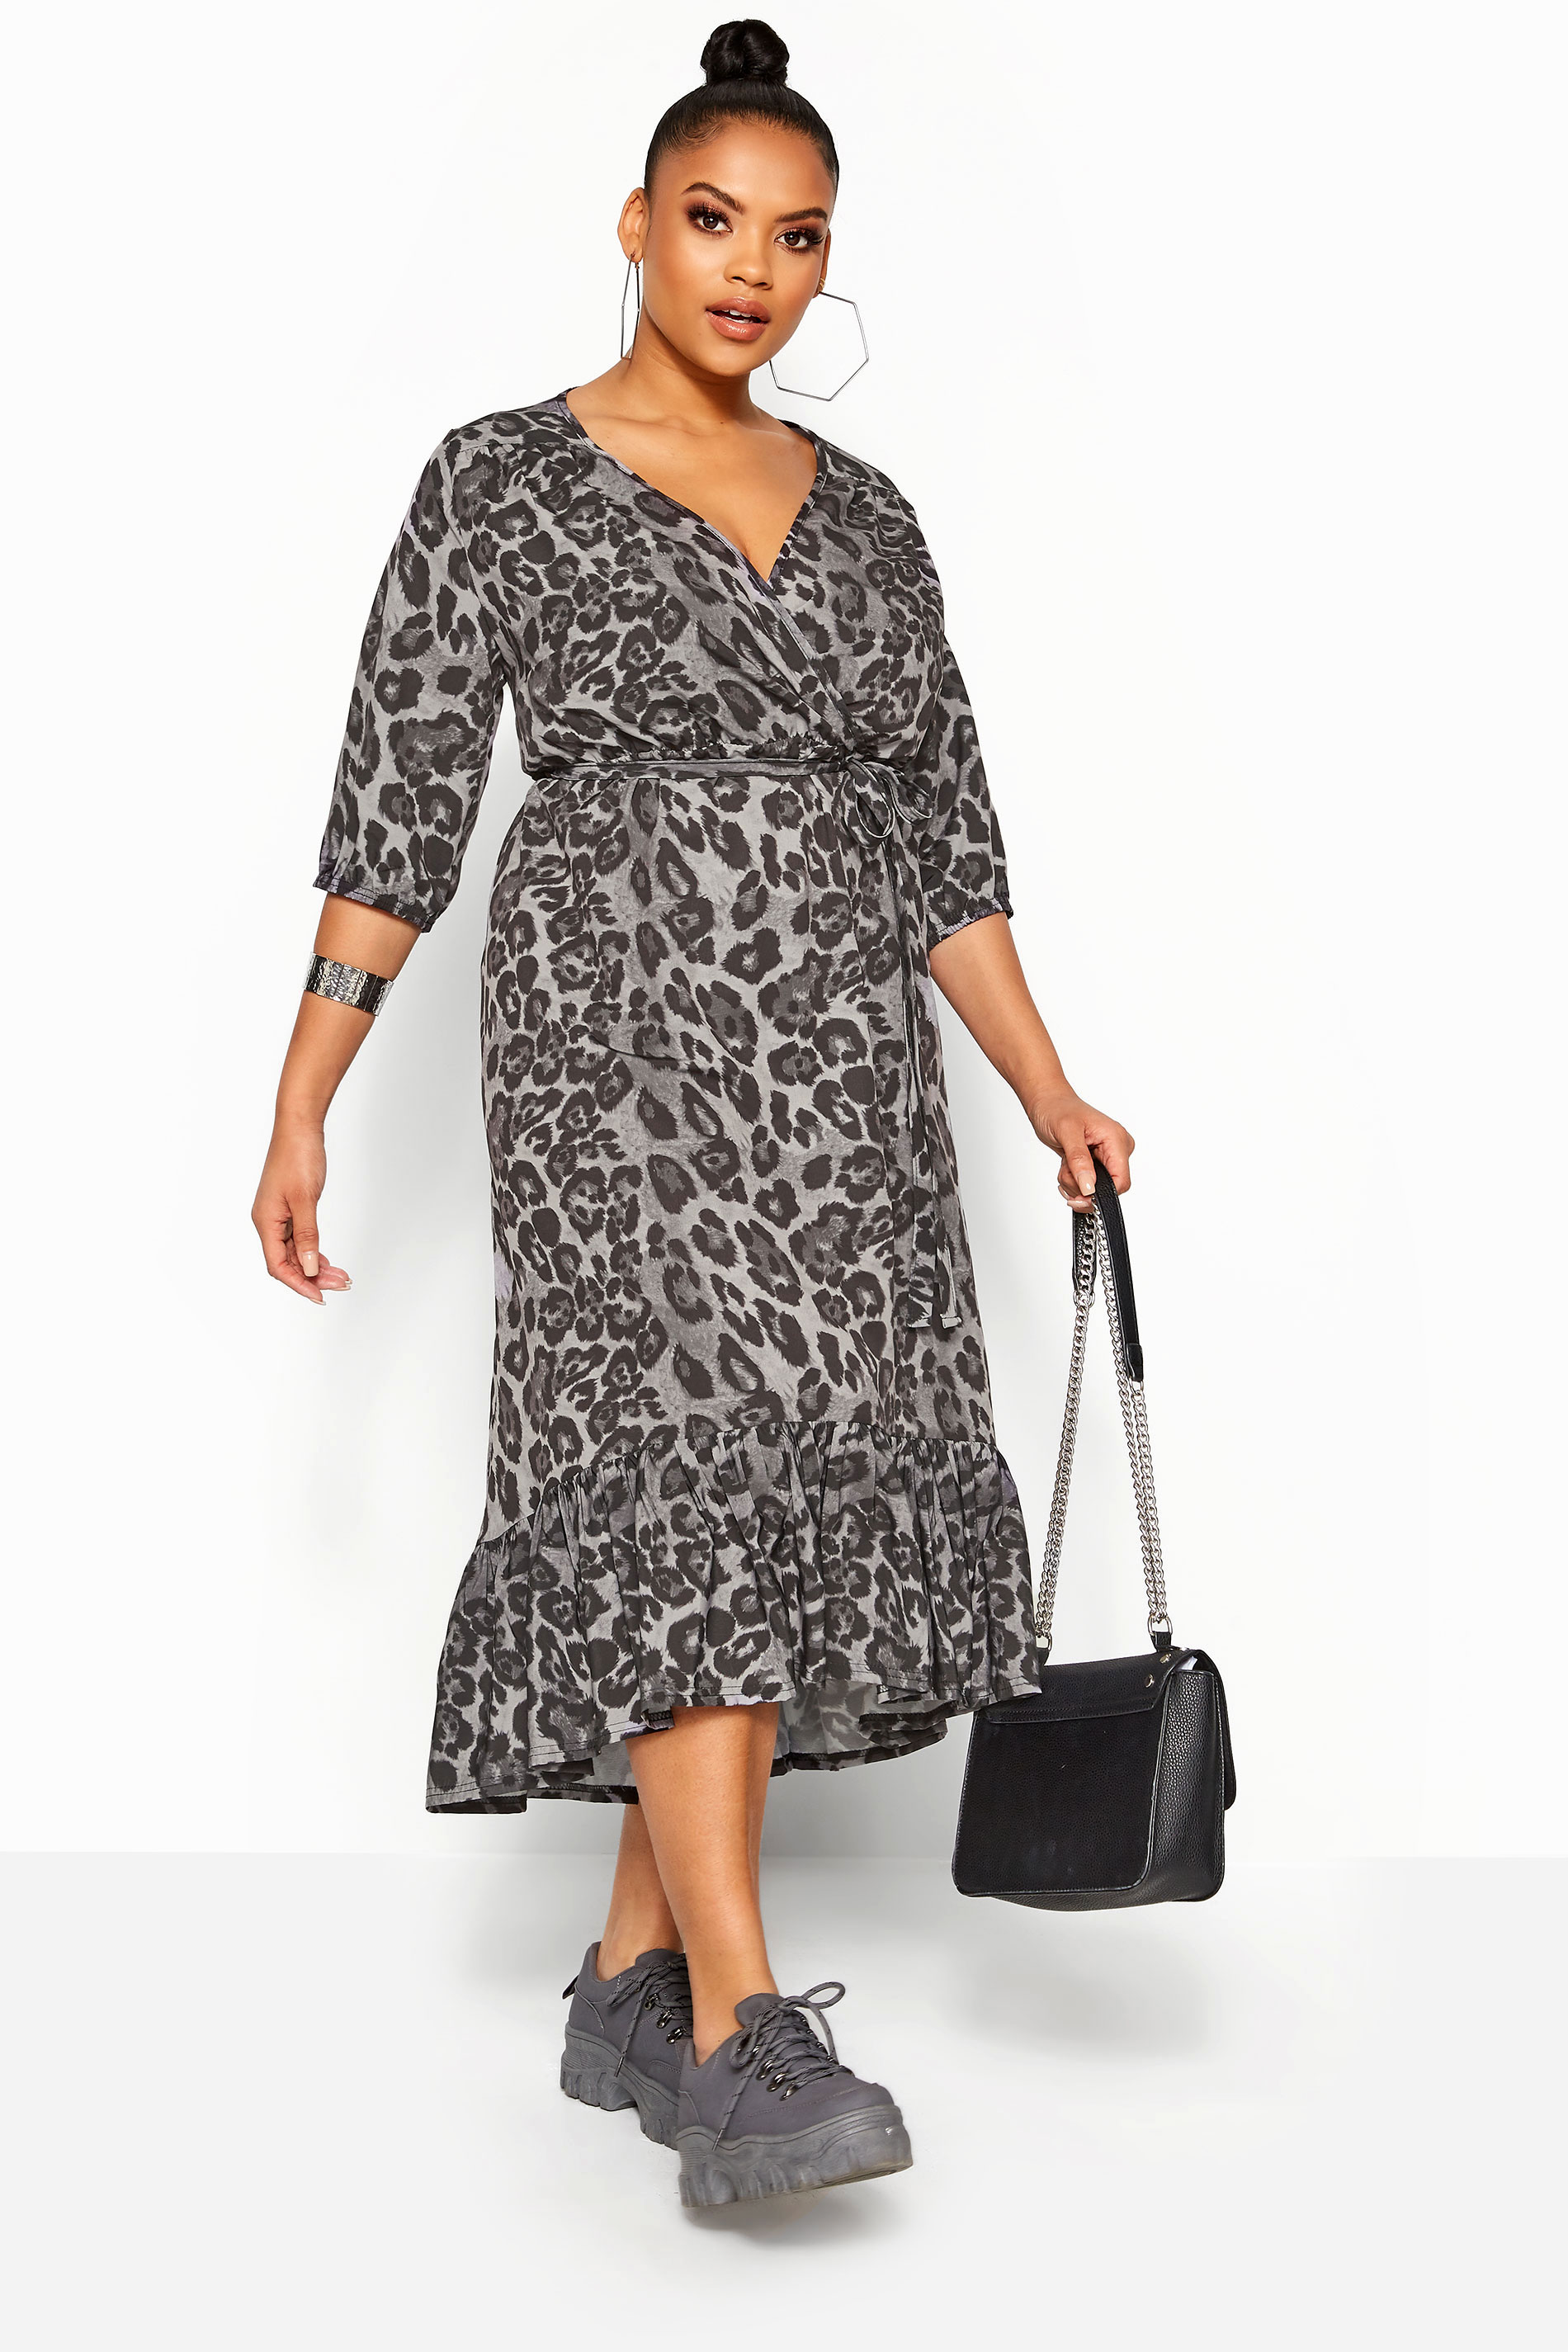 LIMITED COLLECTION Grey Leopard Print Frill Smock Midi Dress